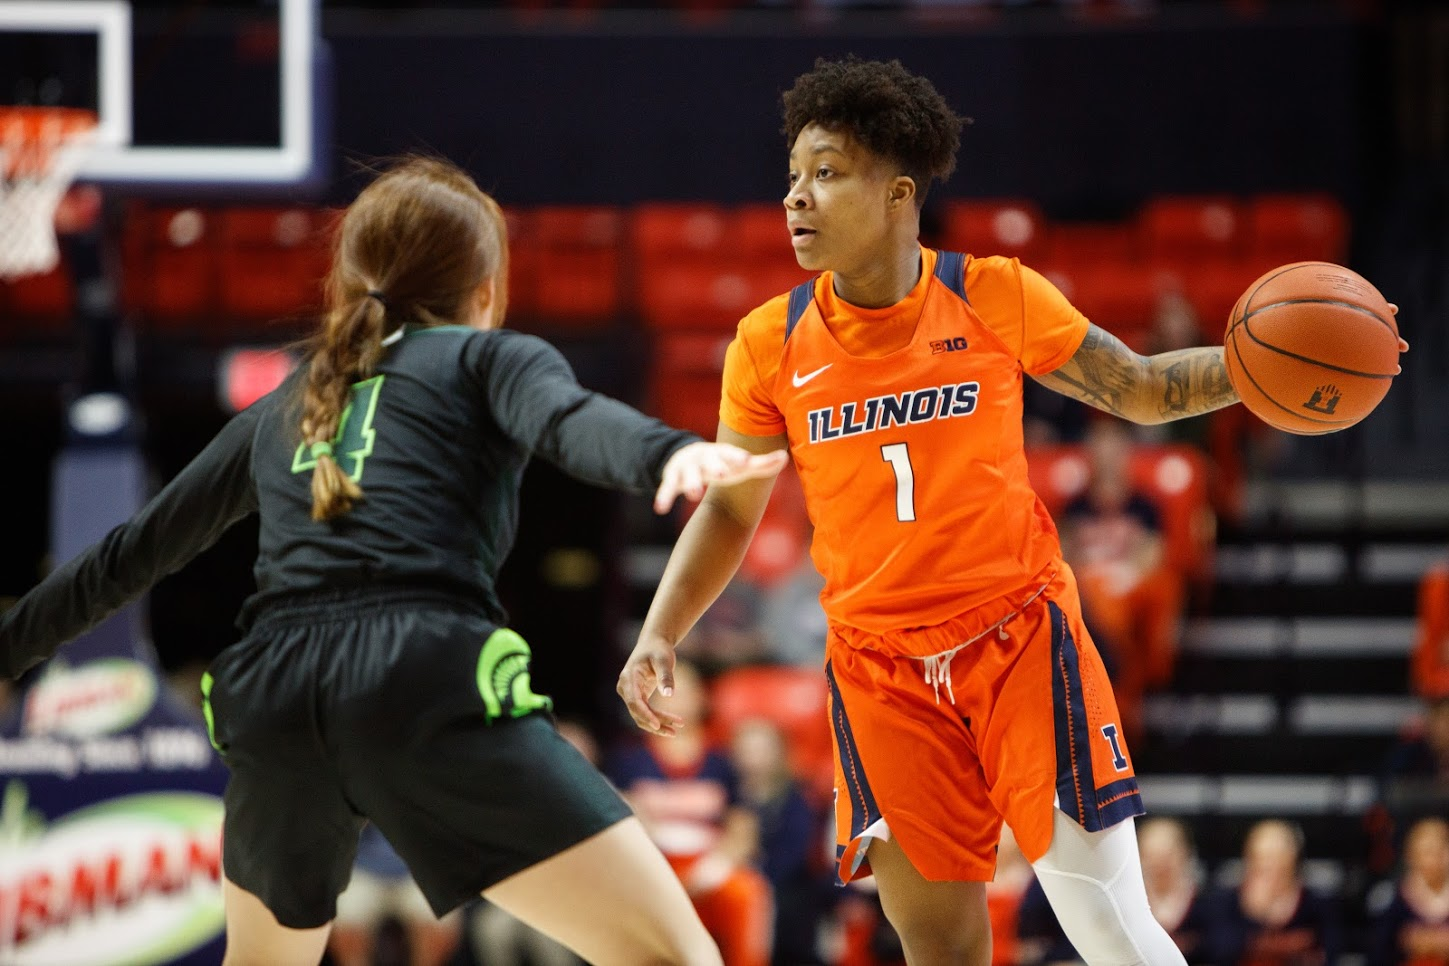 Best Illini Uniforms Blue Jerseys Top 2019 2020 Selections The Daily Illini